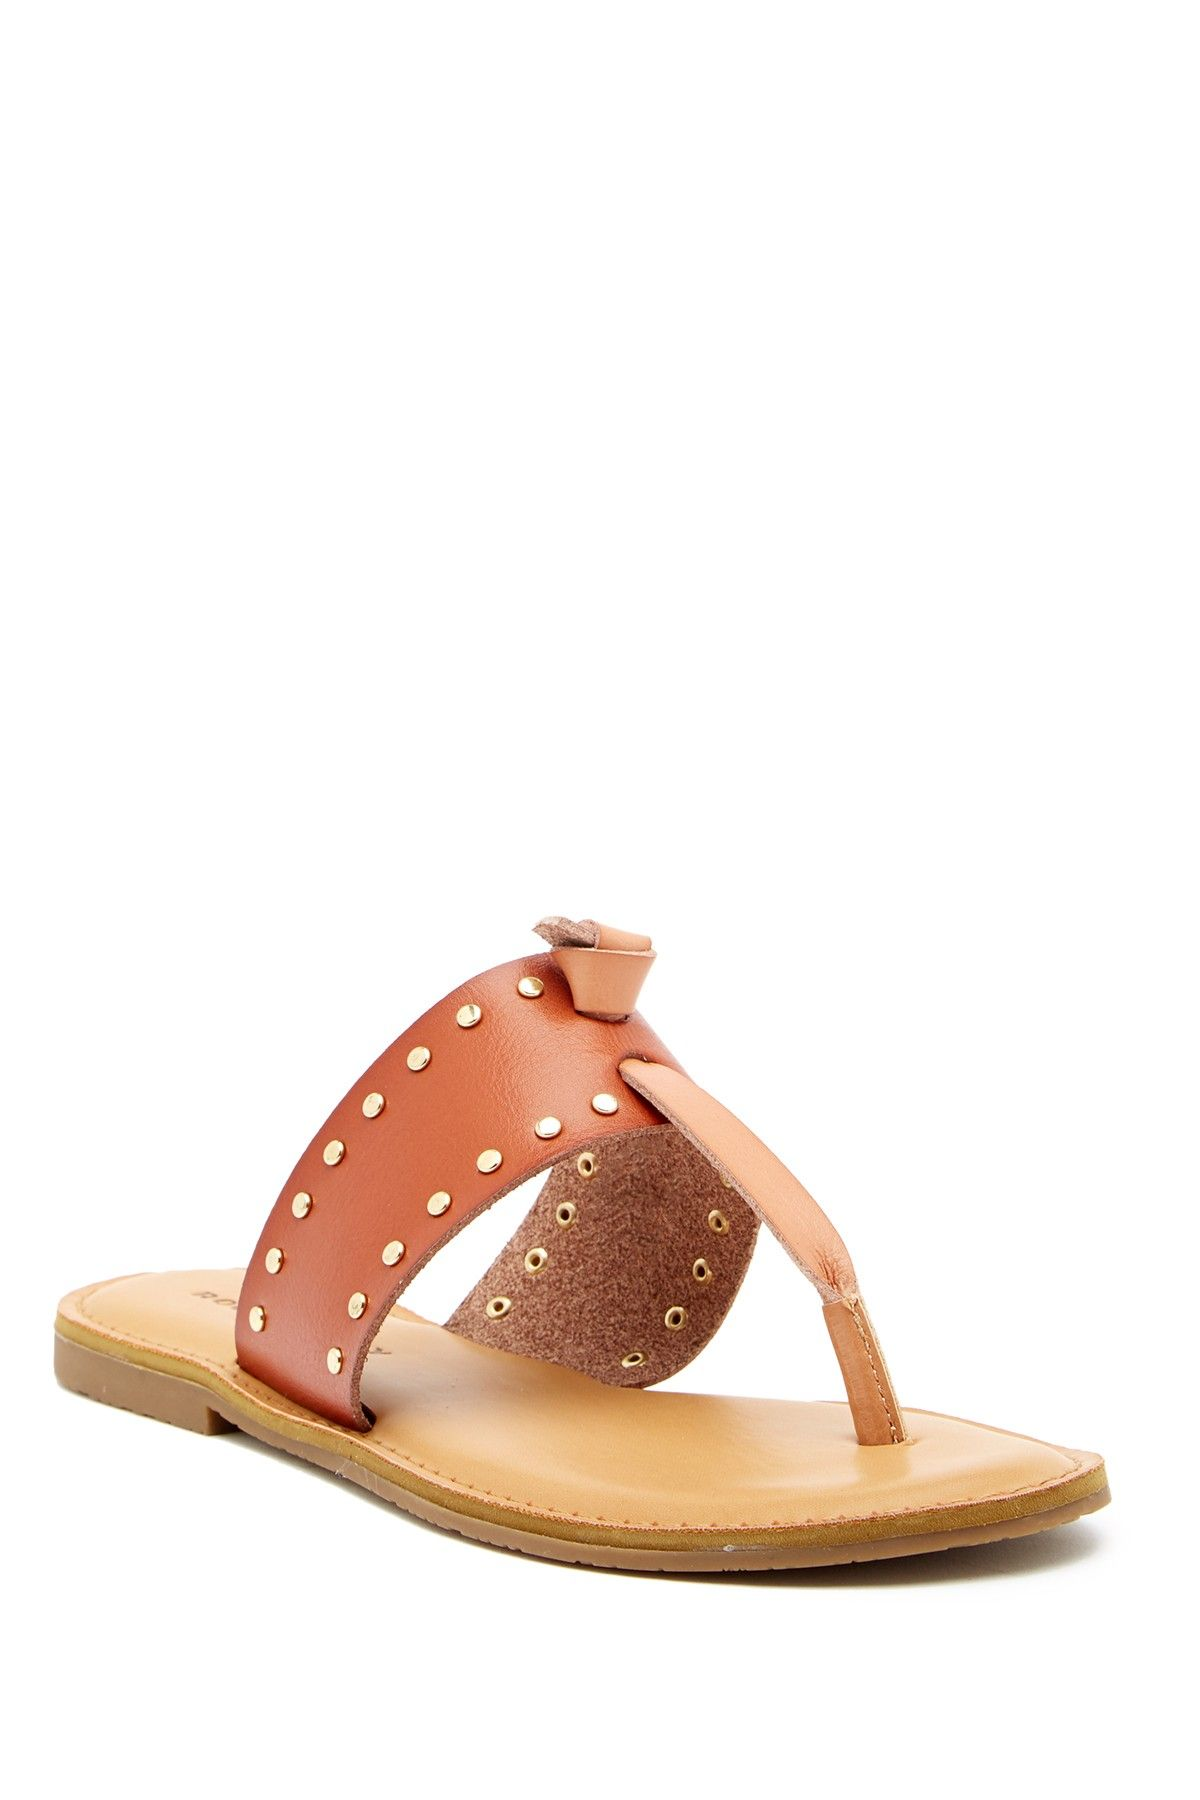 5940f81c0ea Blaney Thong Sandal by Rock   Candy on  nordstrom rack